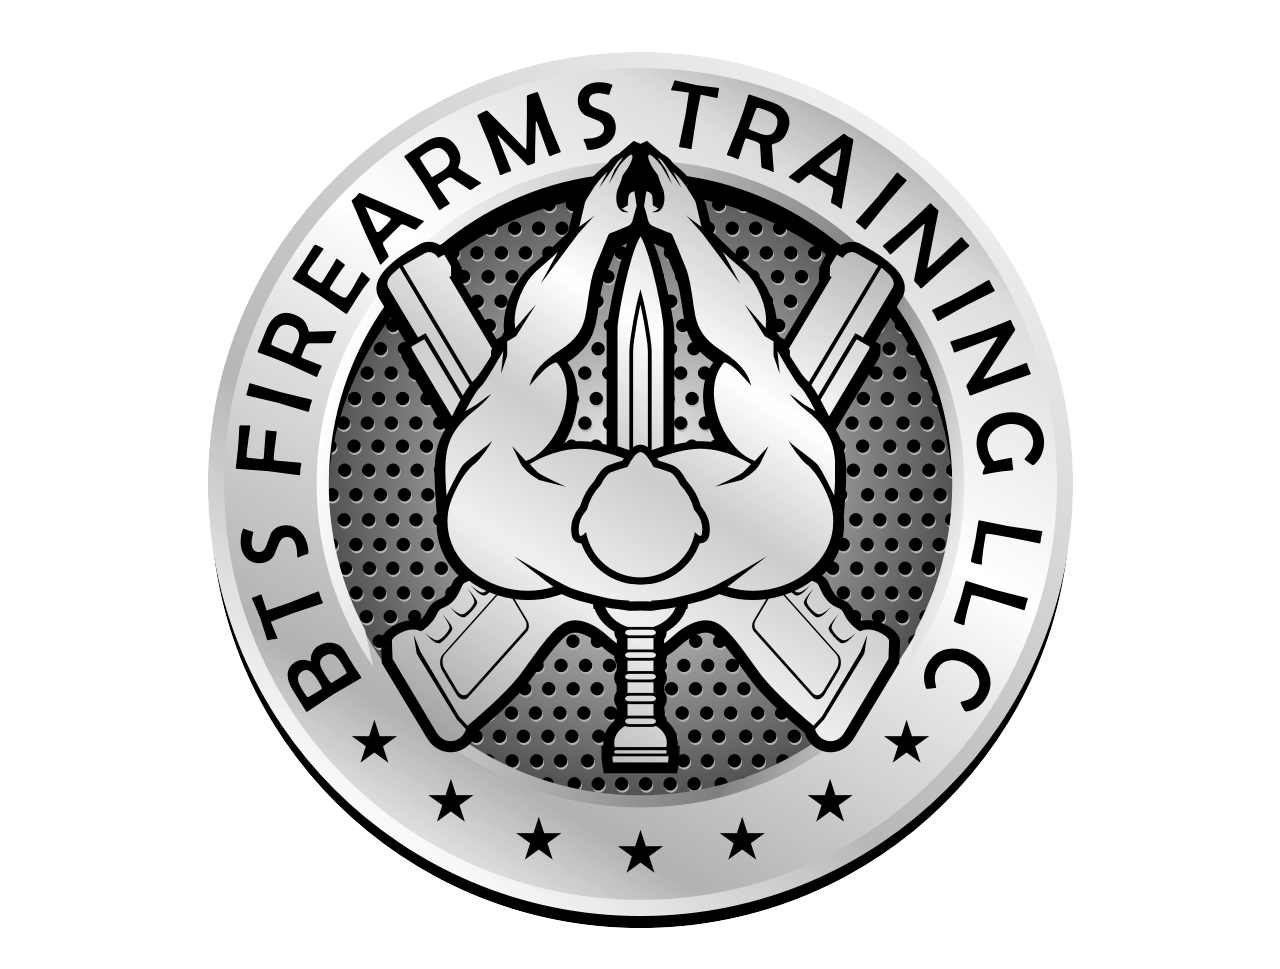 BTS FIREARMS TRAINING